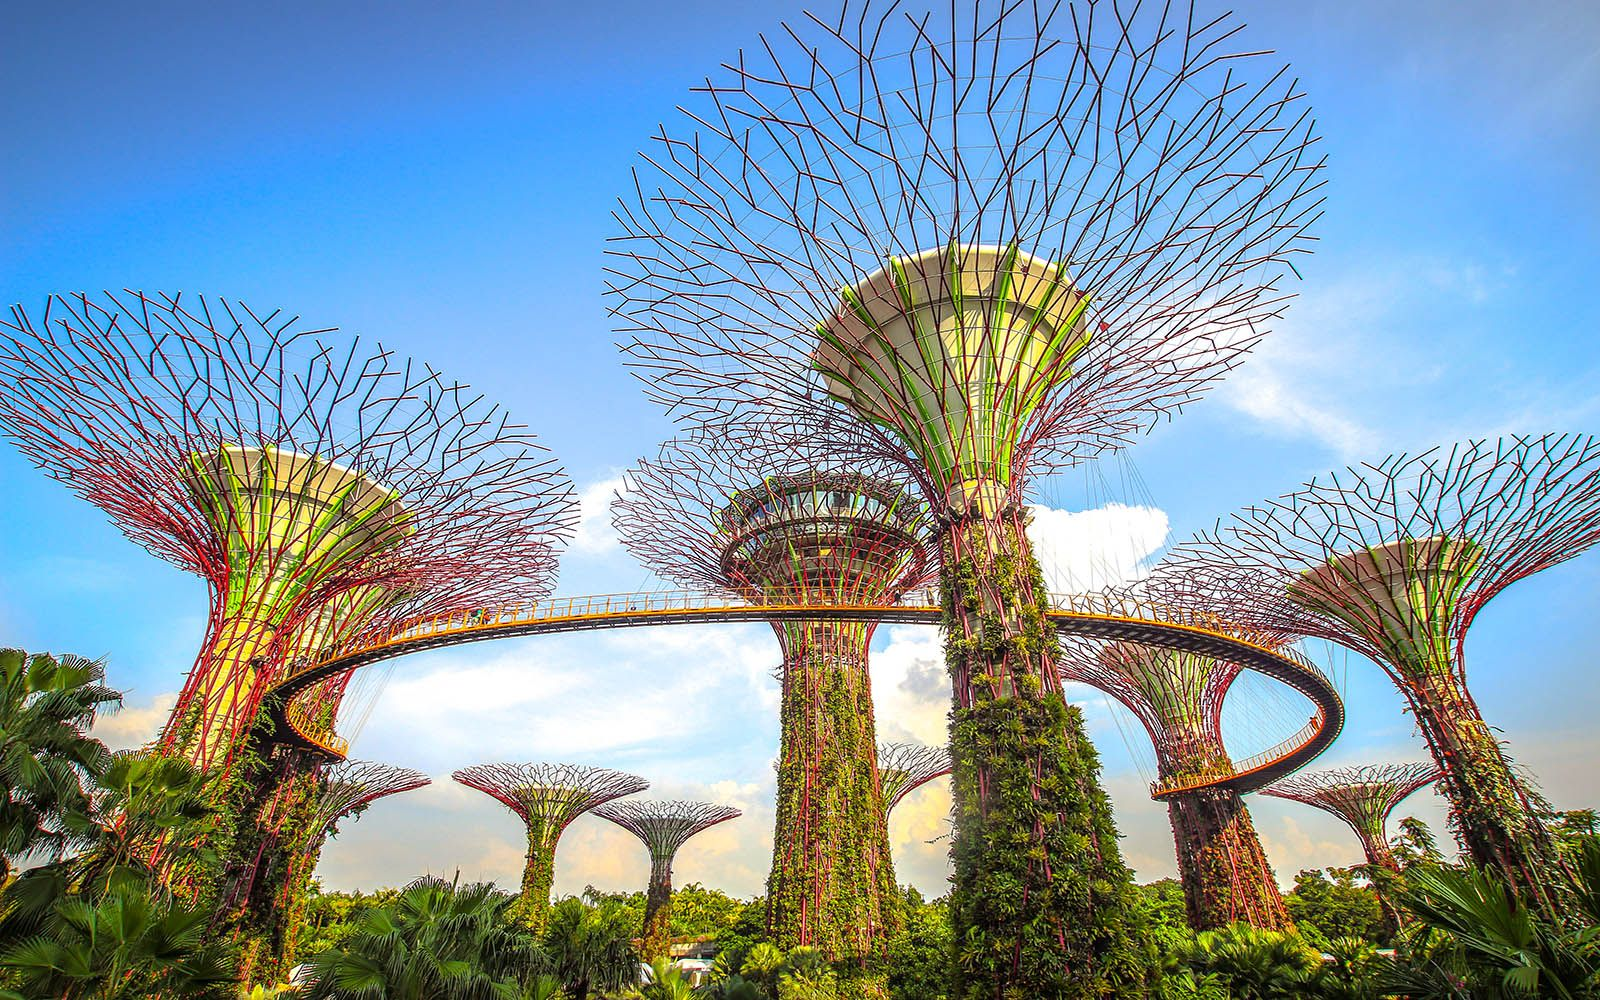 dff7bd4093d1276ab178baeb86226dd8 - Gardens By The Bay Singapore On Budget